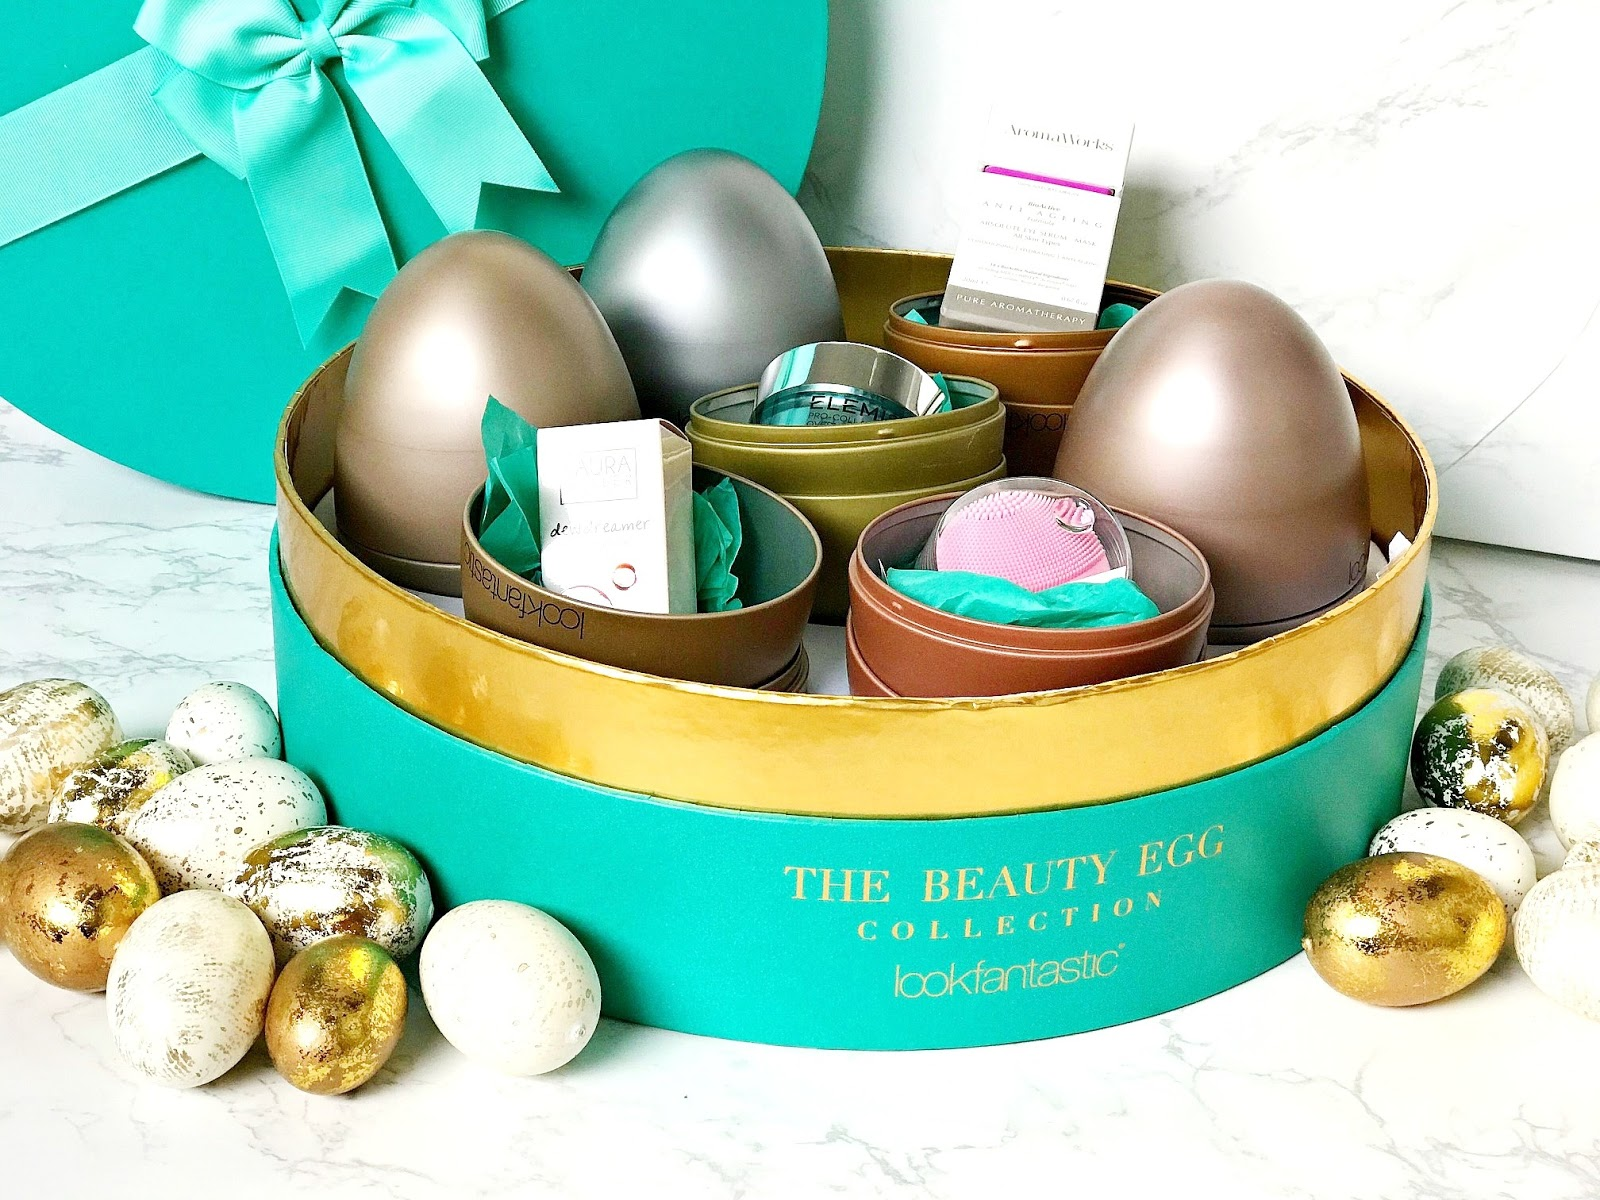 Look Fantastic Limited Edition 2019 Beauty Egg Collection Review & Contents